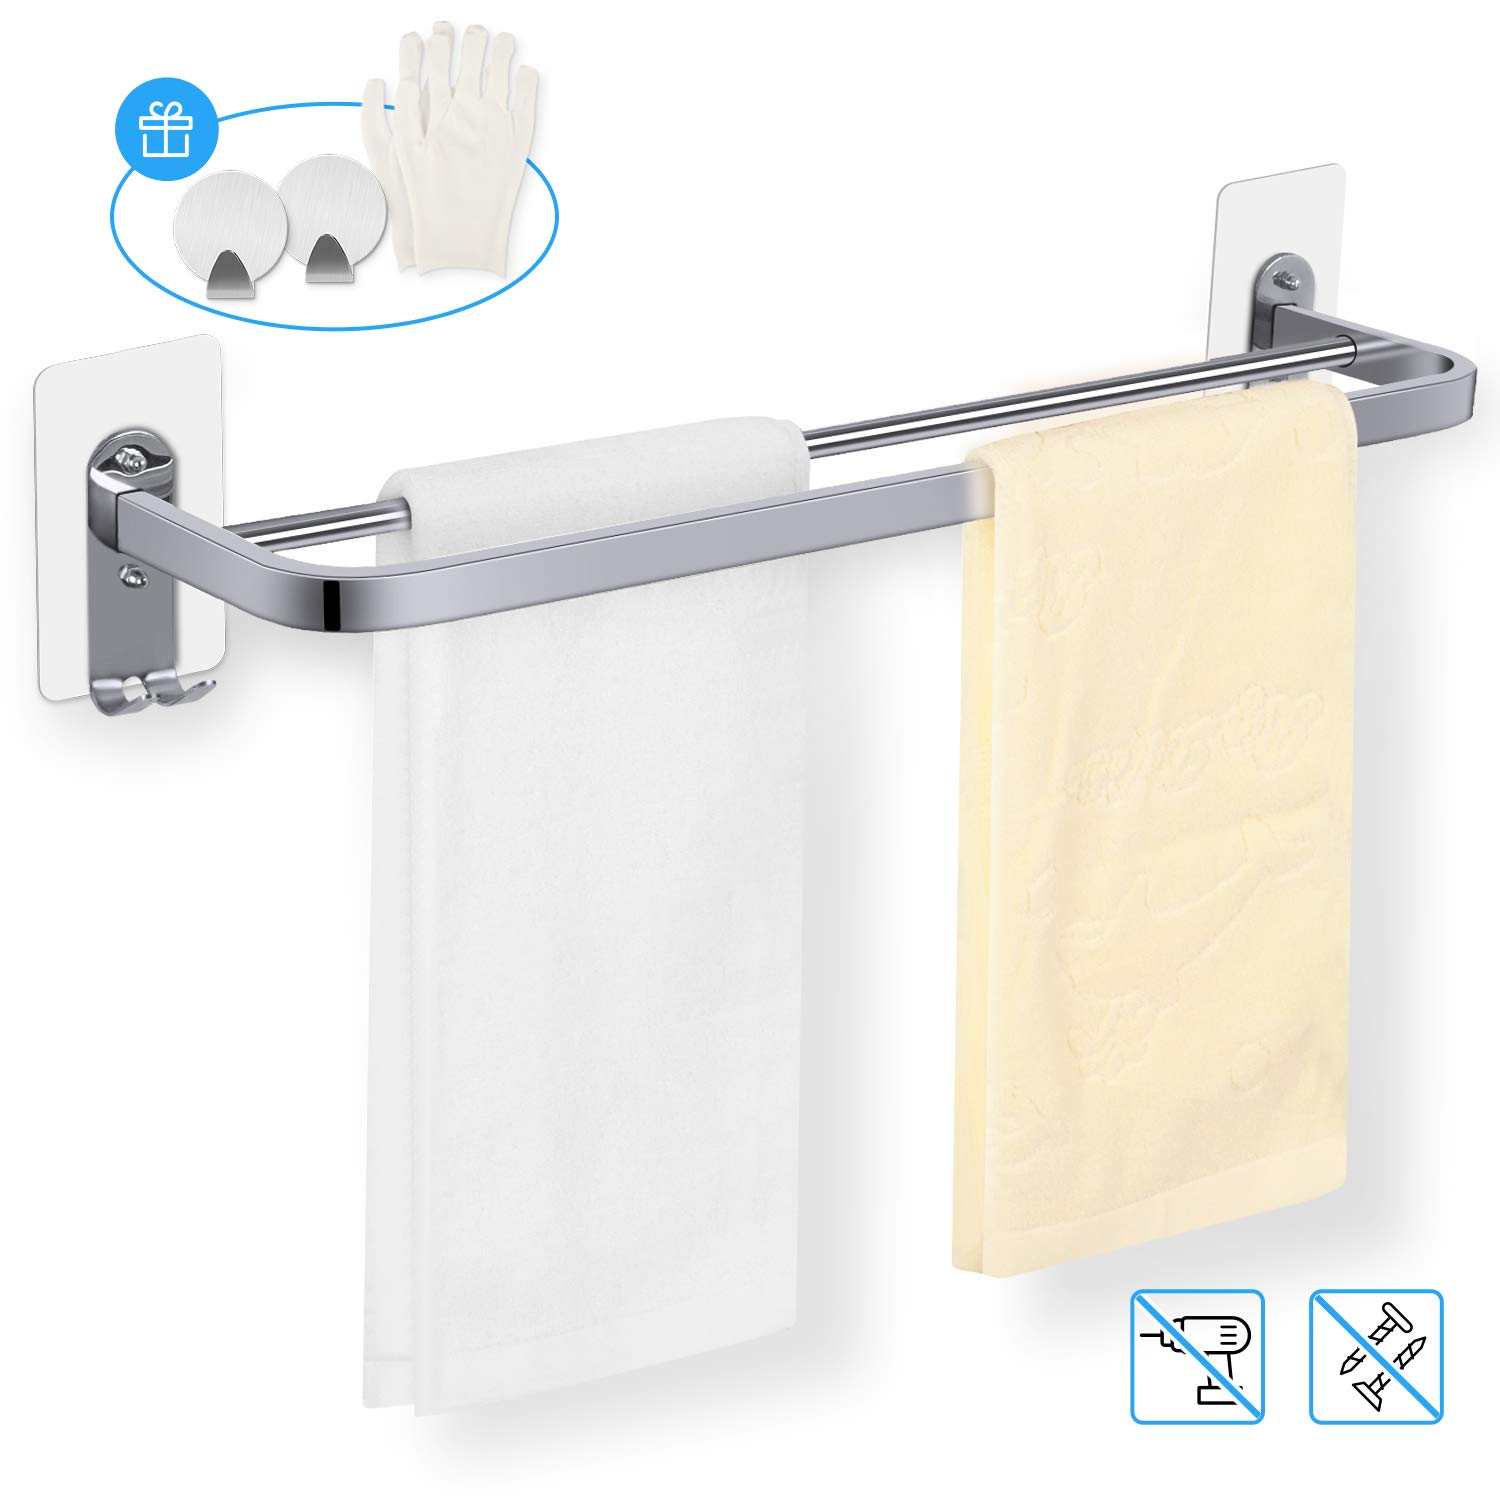 Double Towel Rail, 23in/58cm Self Adhesive or Wall Mounted Stainless Steel Towel Rack Holder with Double Hooks -2 Small Hooks and Gloves as Gift, MENNYO Bathroom Kitchen Hardware Accessory